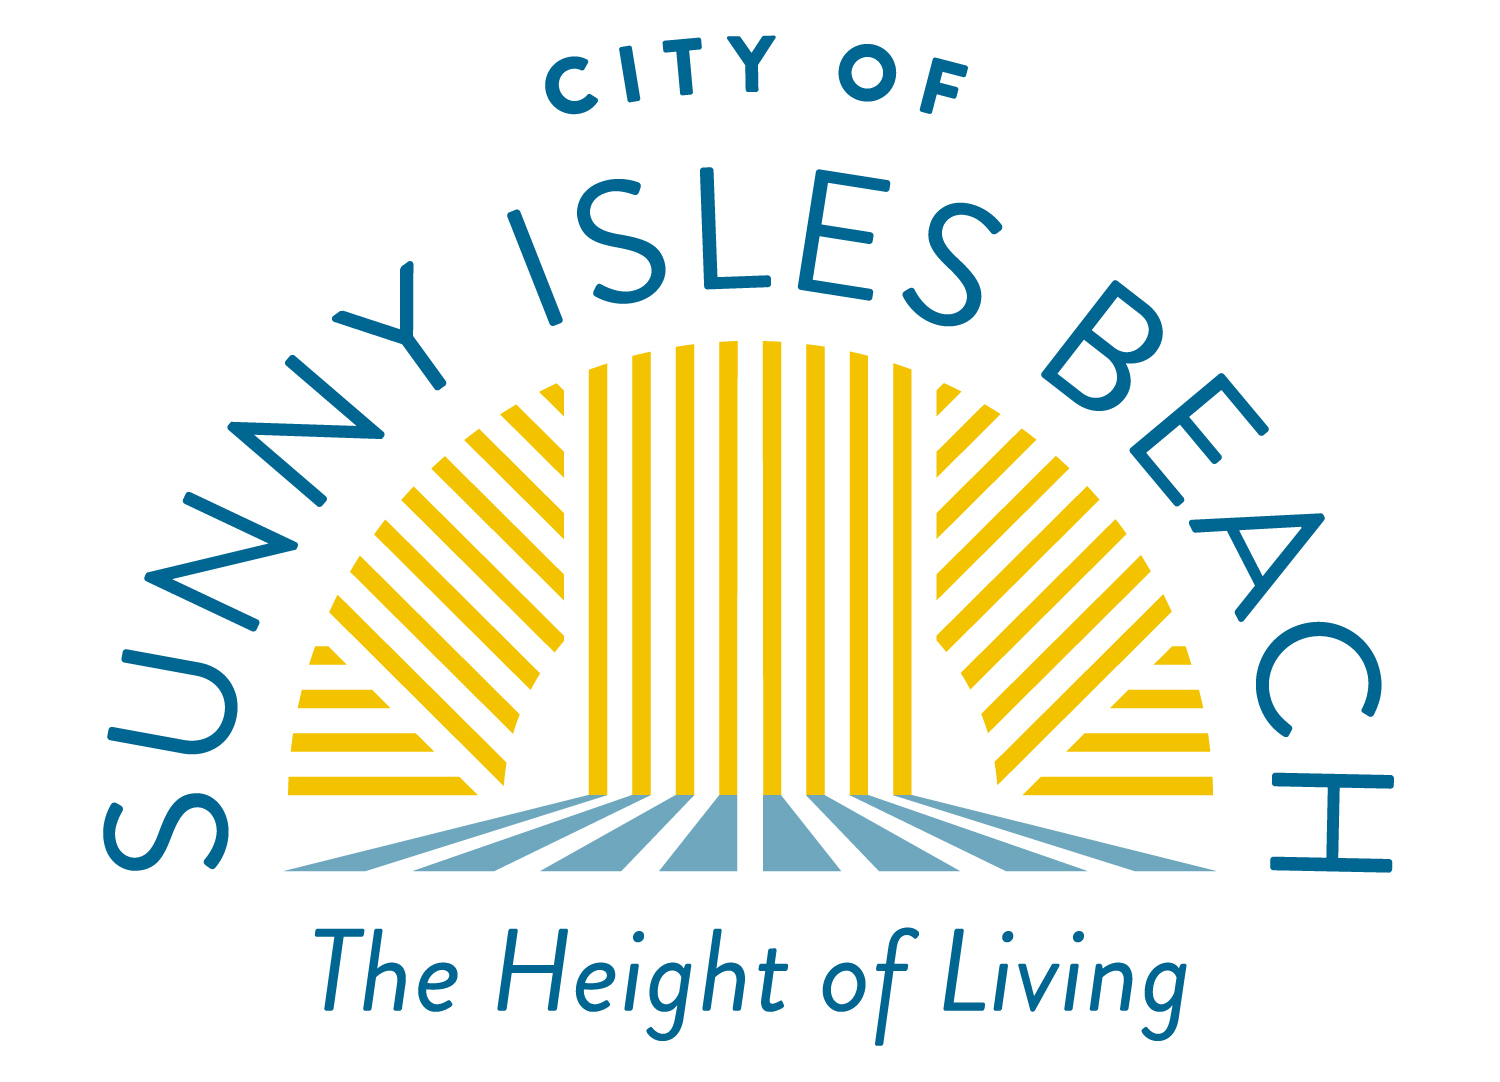 City of Sunny Isles Beach logo. Tagline: The Height of Living